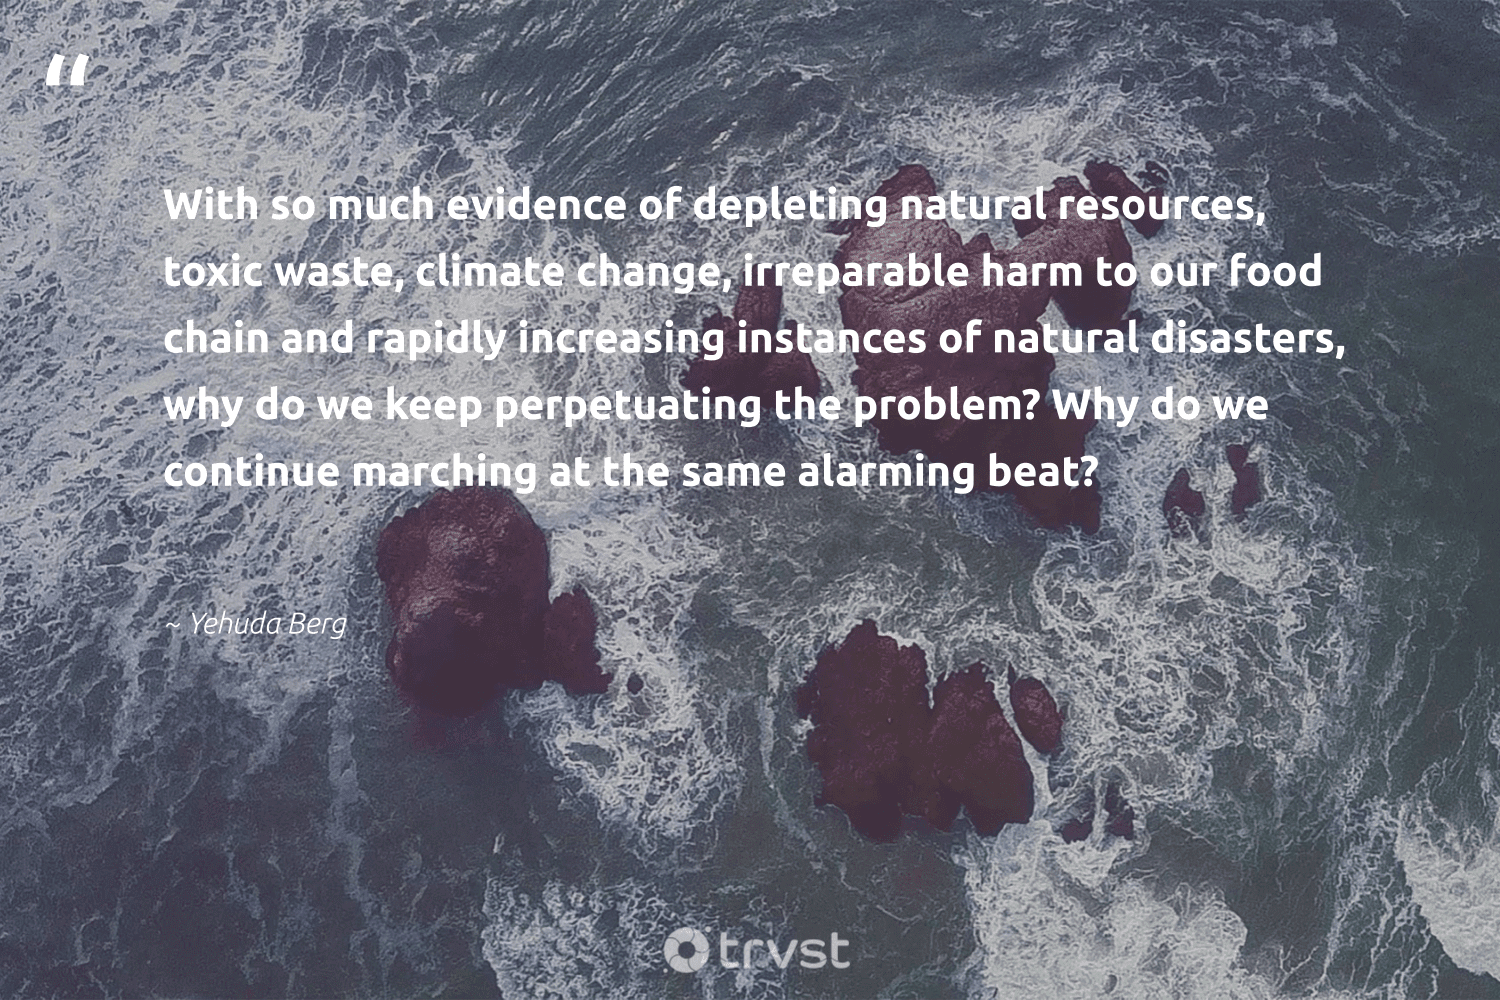 """""""With so much evidence of depleting natural resources, toxic waste, climate change, irreparable harm to our food chain and rapidly increasing instances of natural disasters, why do we keep perpetuating the problem? Why do we continue marching at the same alarming beat?""""  - Yehuda Berg #trvst #quotes #waste #climatechange #toxic #natural #climate #food #climatechangeisreal #spill #wildernessnation #climateaction"""